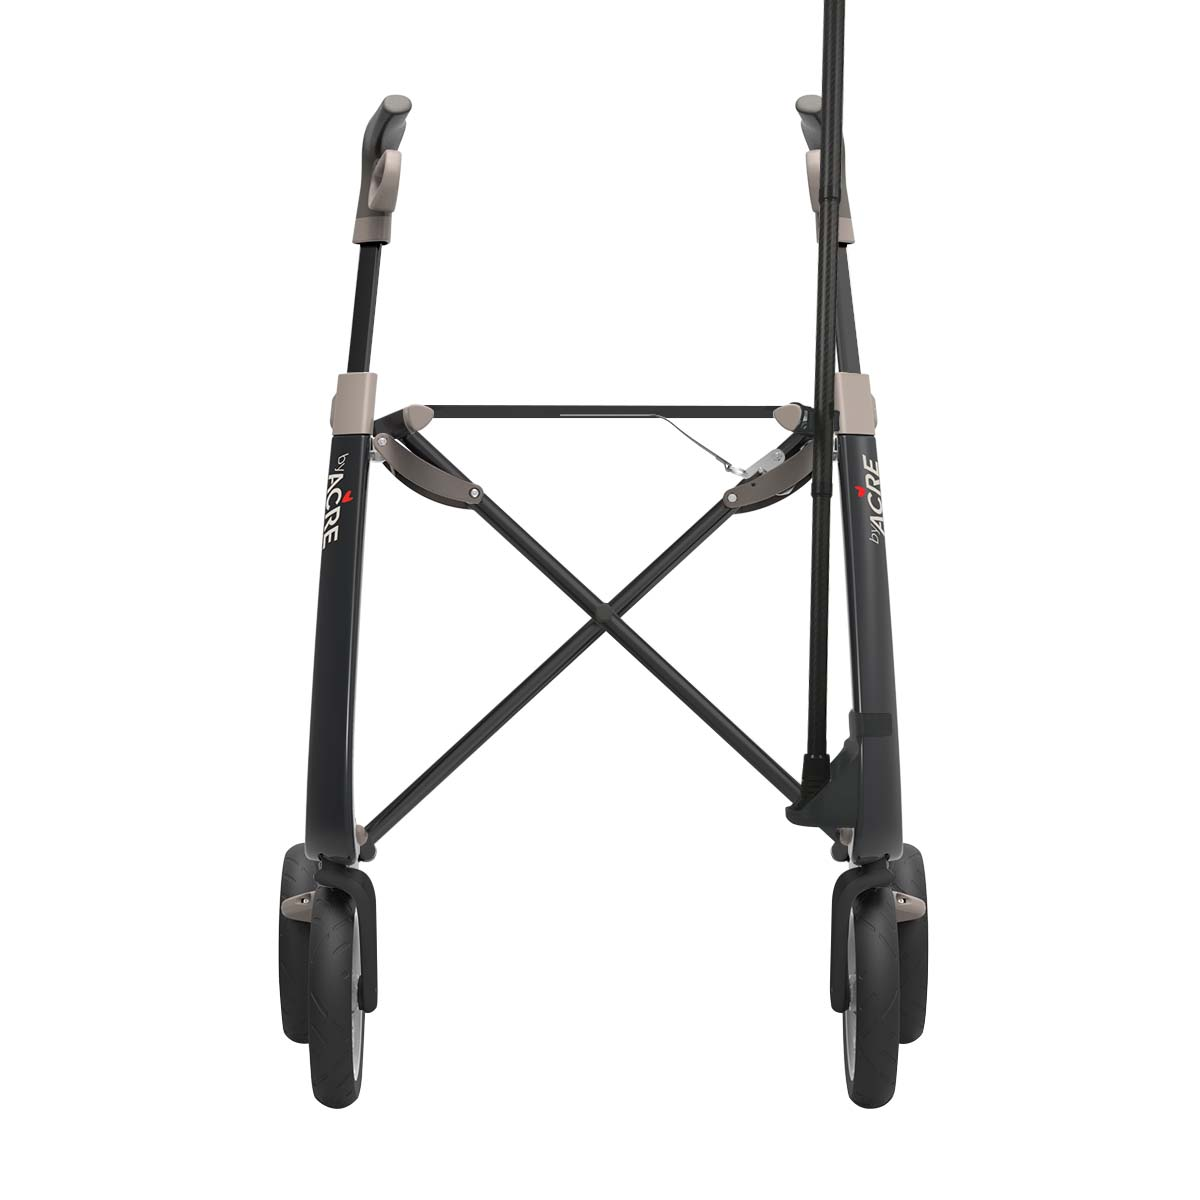 Cane holder for the right side attached to the black Carbon Ultralight rollator - with cane - seen from the front